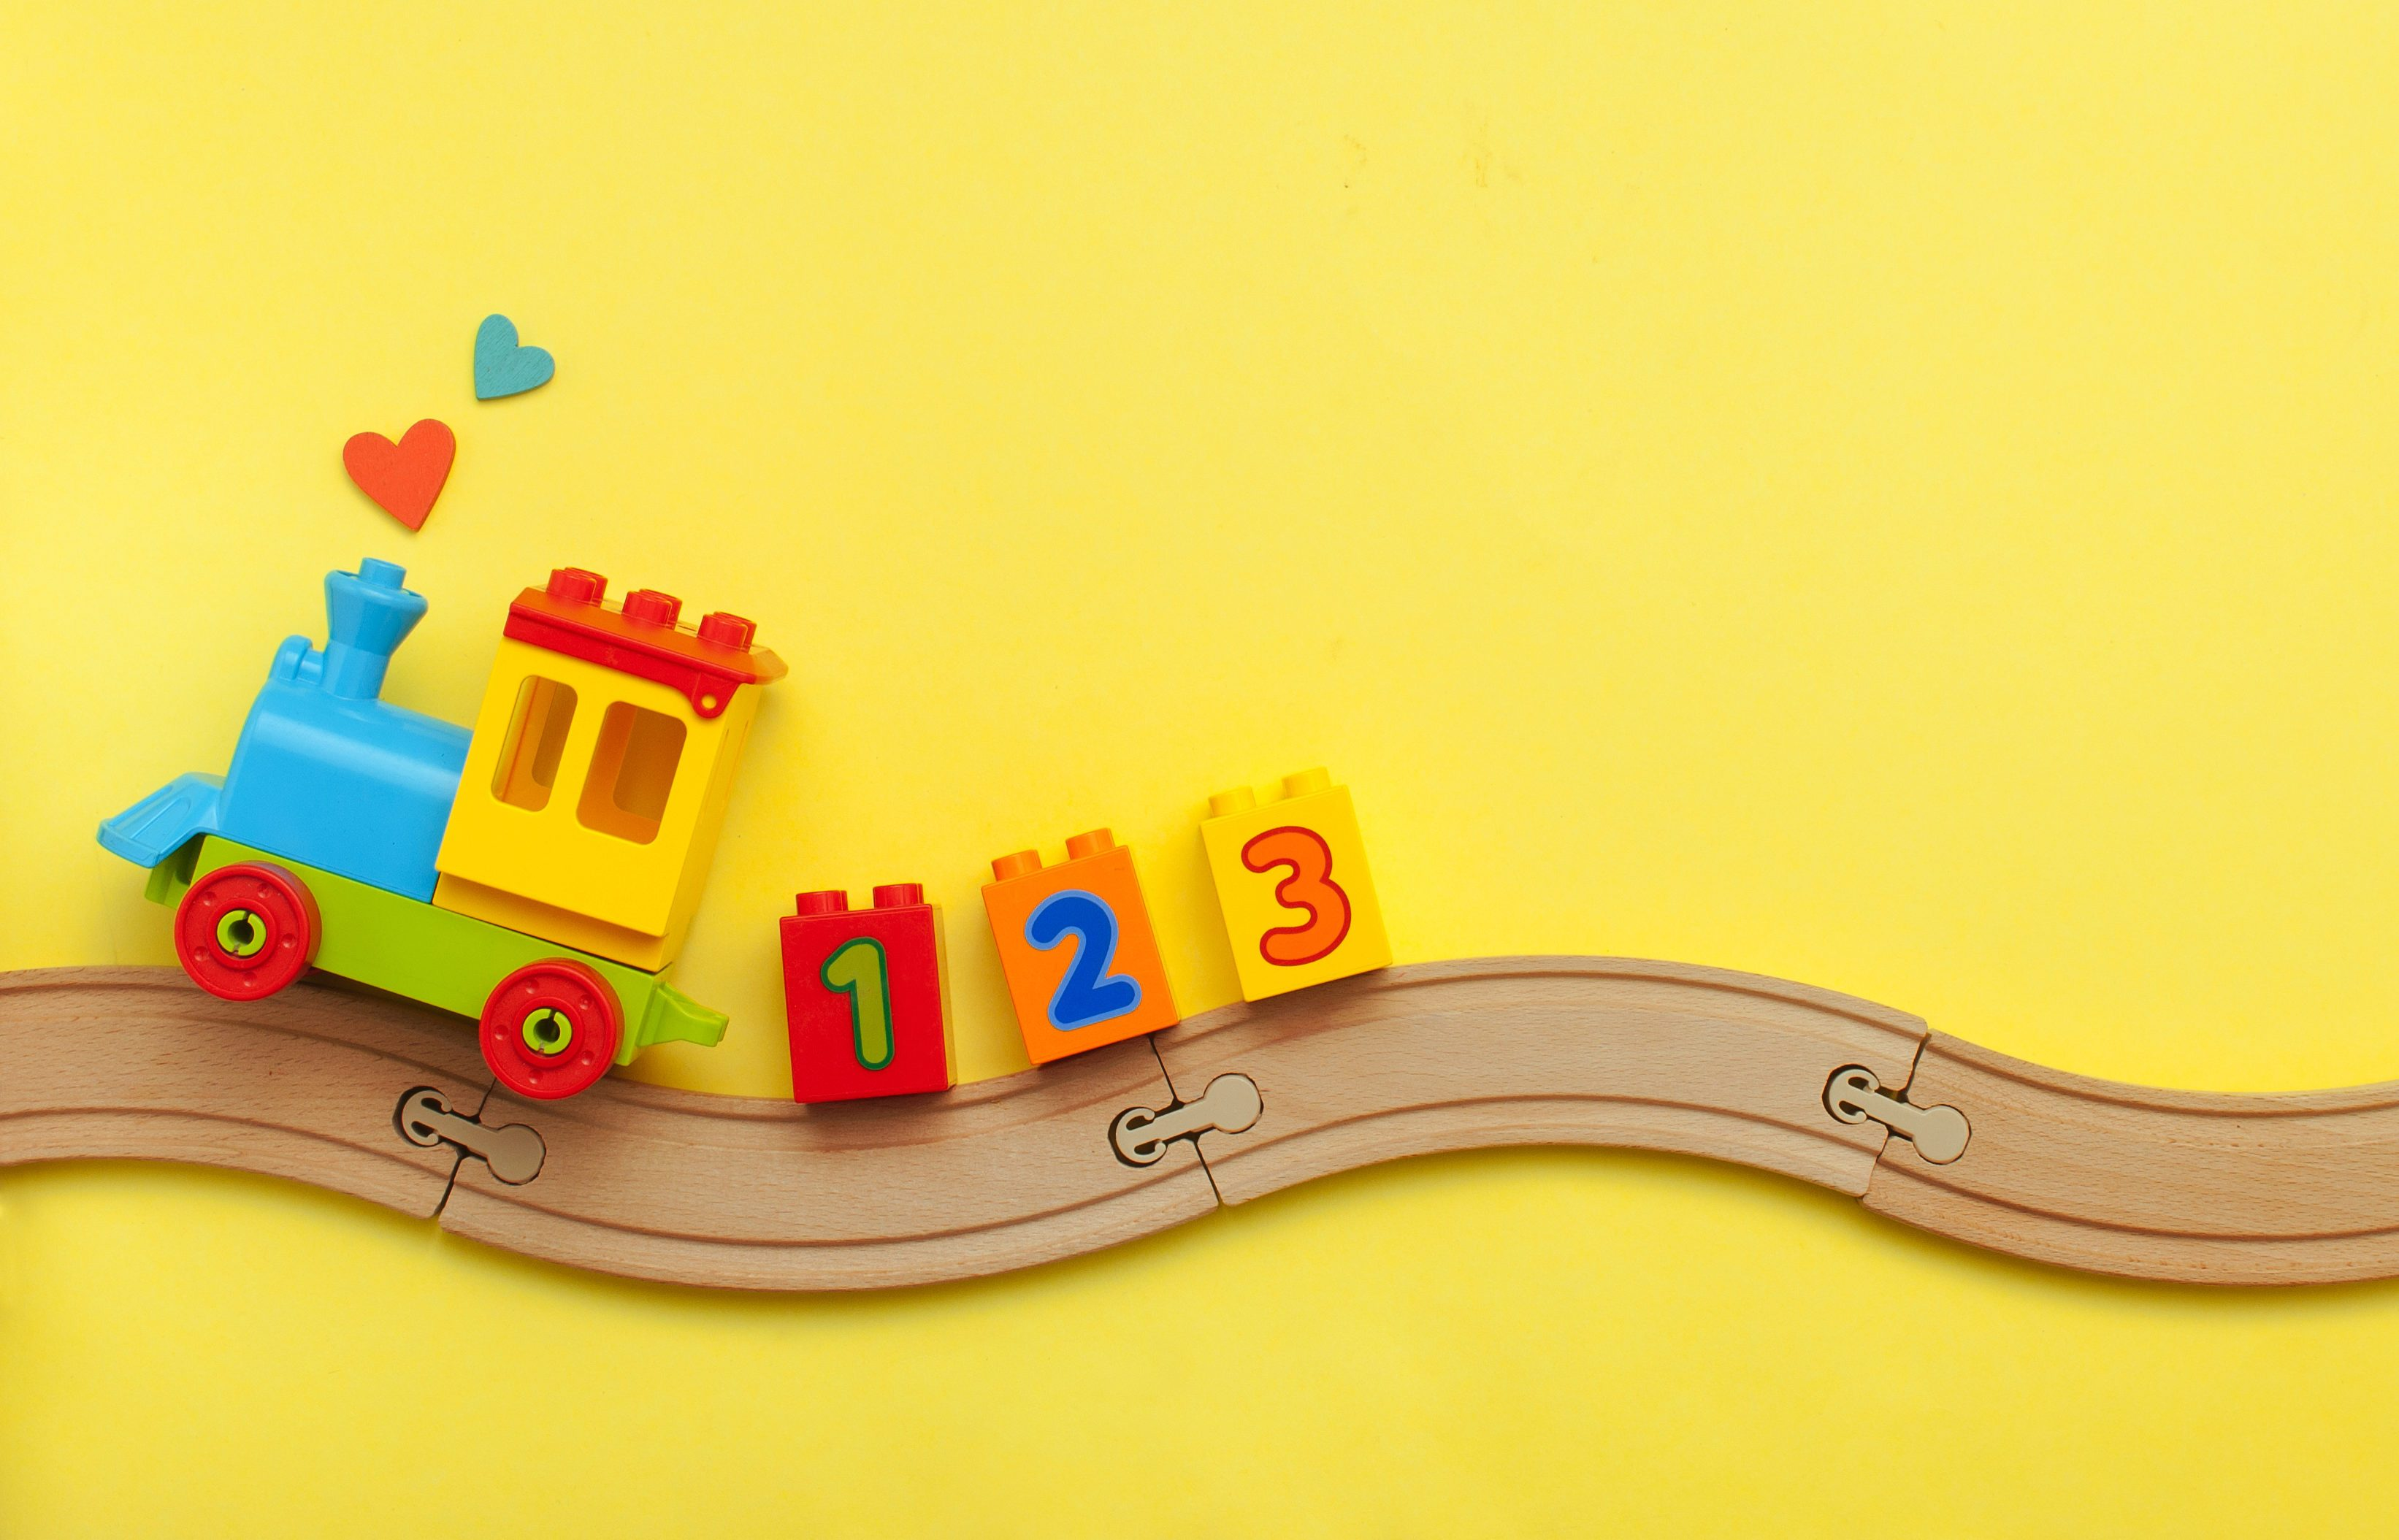 Toys background with copy space. Kids toy train with numbers on toy wooden railway on yellow background with blank space for text. Top view, flat lay.